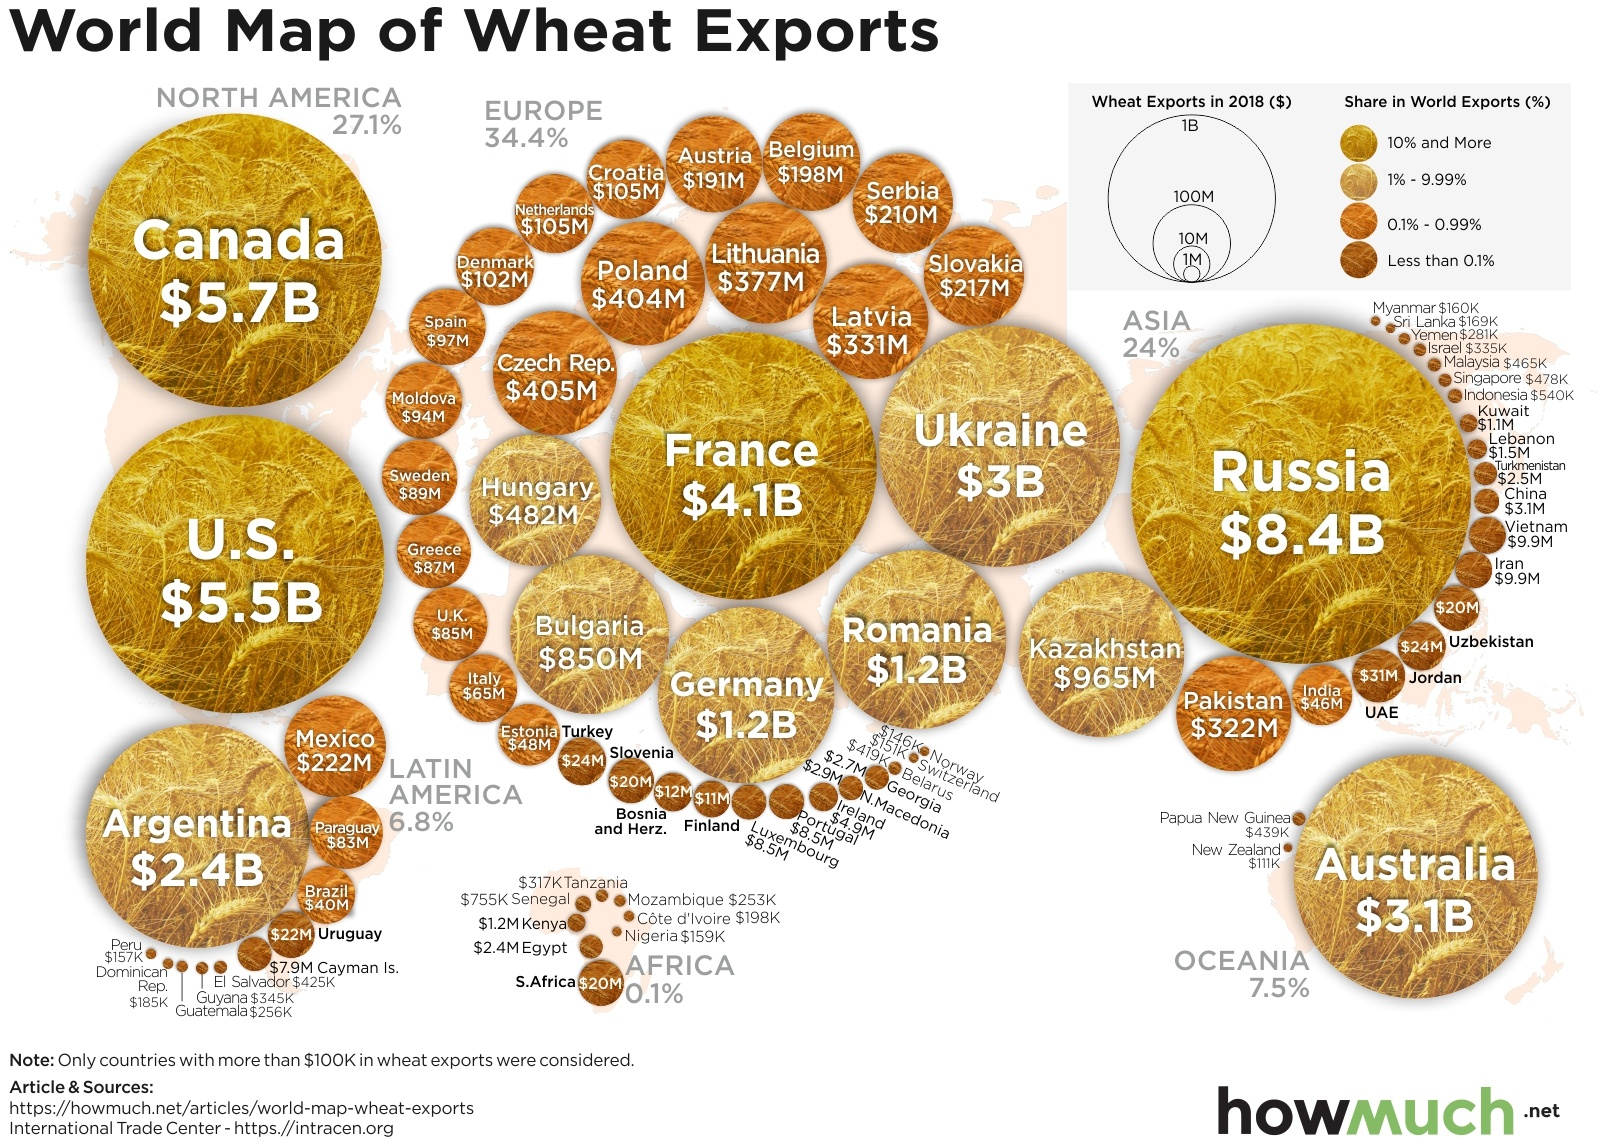 Wheat Exports by Country